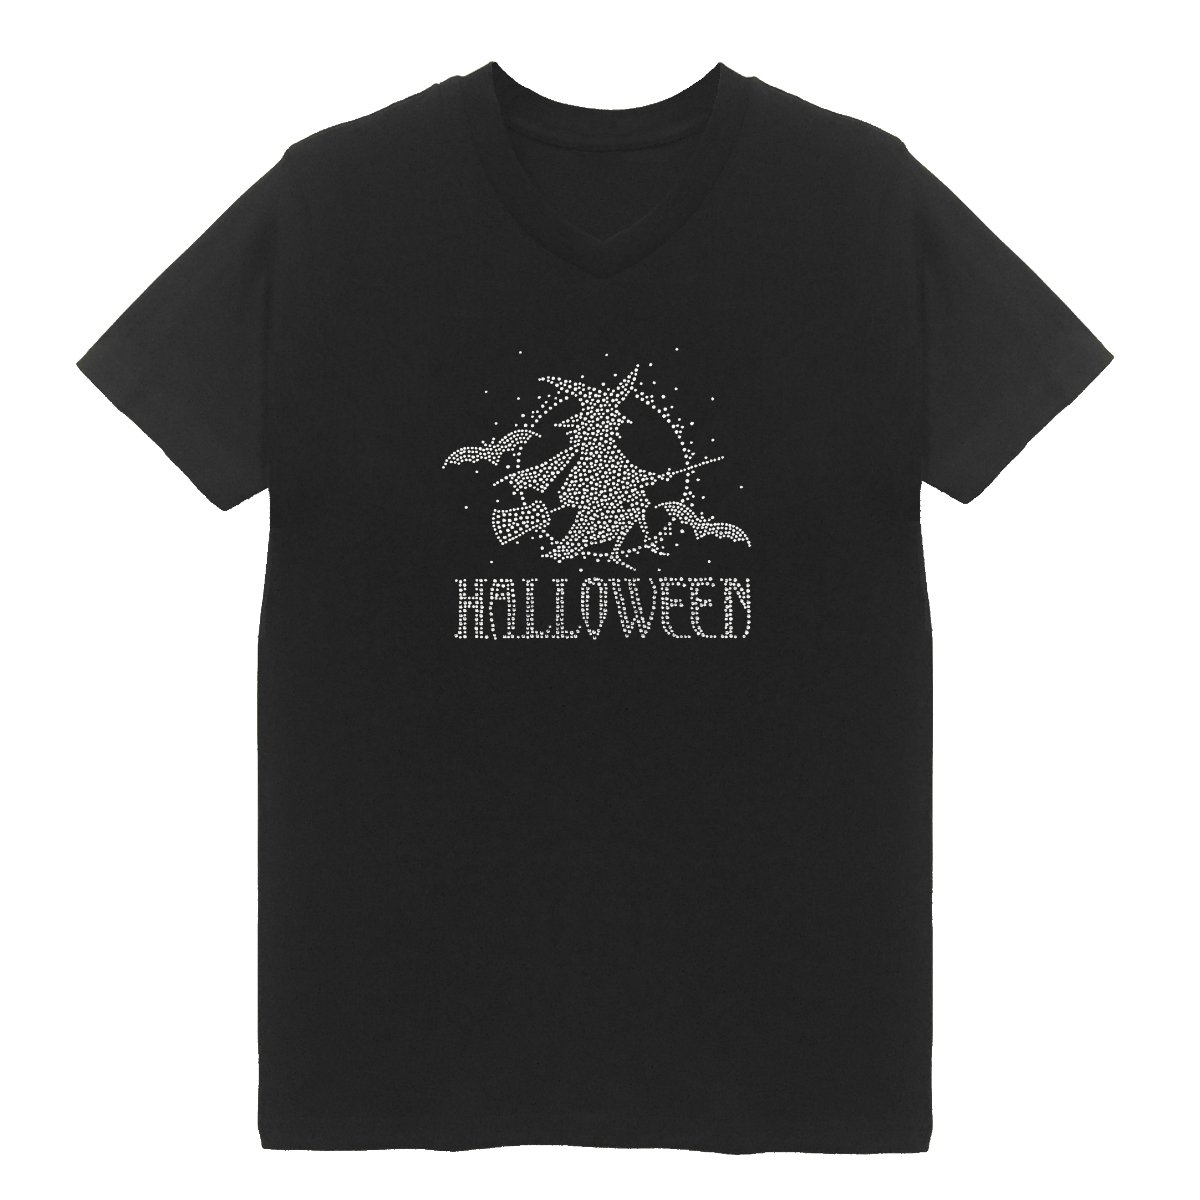 HappymomShirts Halloween Women's V Neck T-Shirt Plus Size Unisex